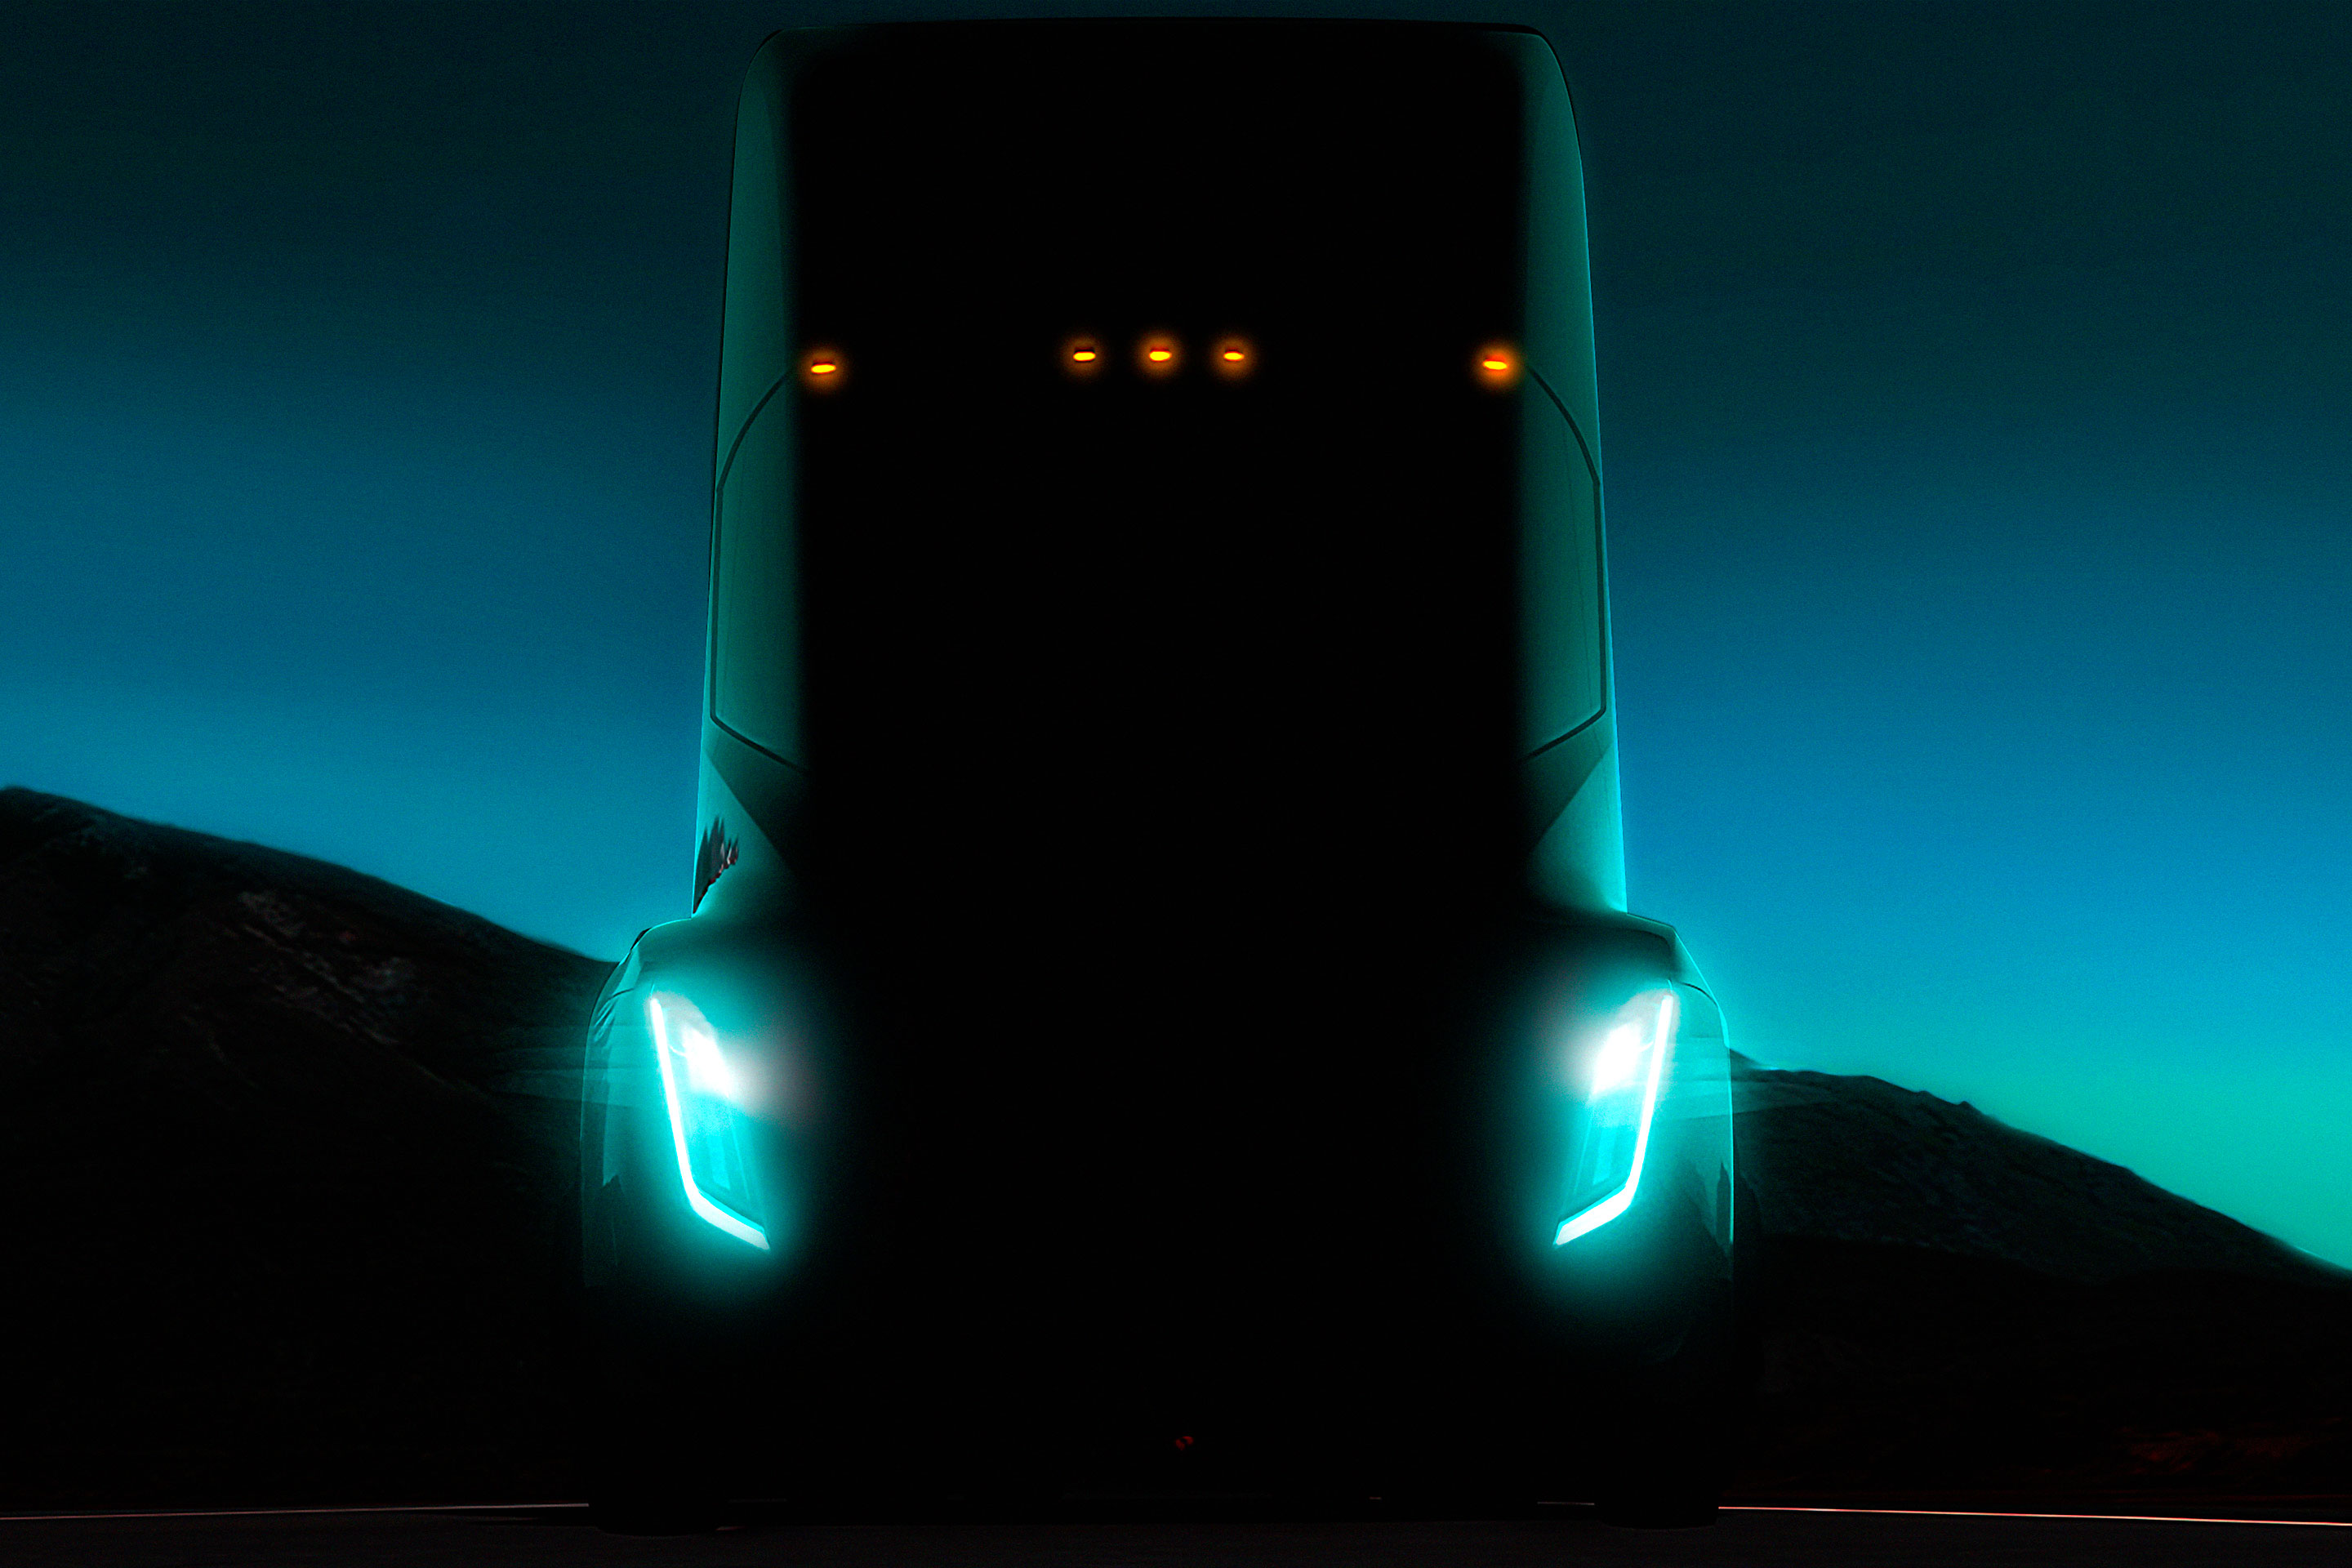 The Tesla Semi is one of several solutions in development by companies that see business opportunity in the inefficiencies of the commercial trucking industry.